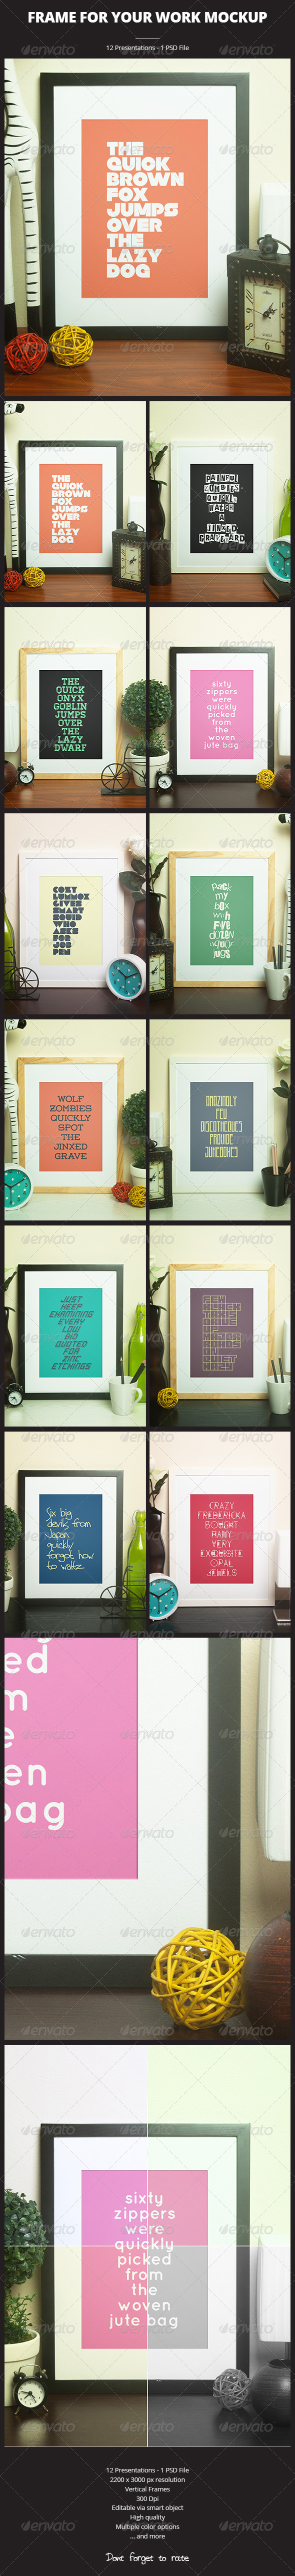 GraphicRiver Frame For Your Work 6260676